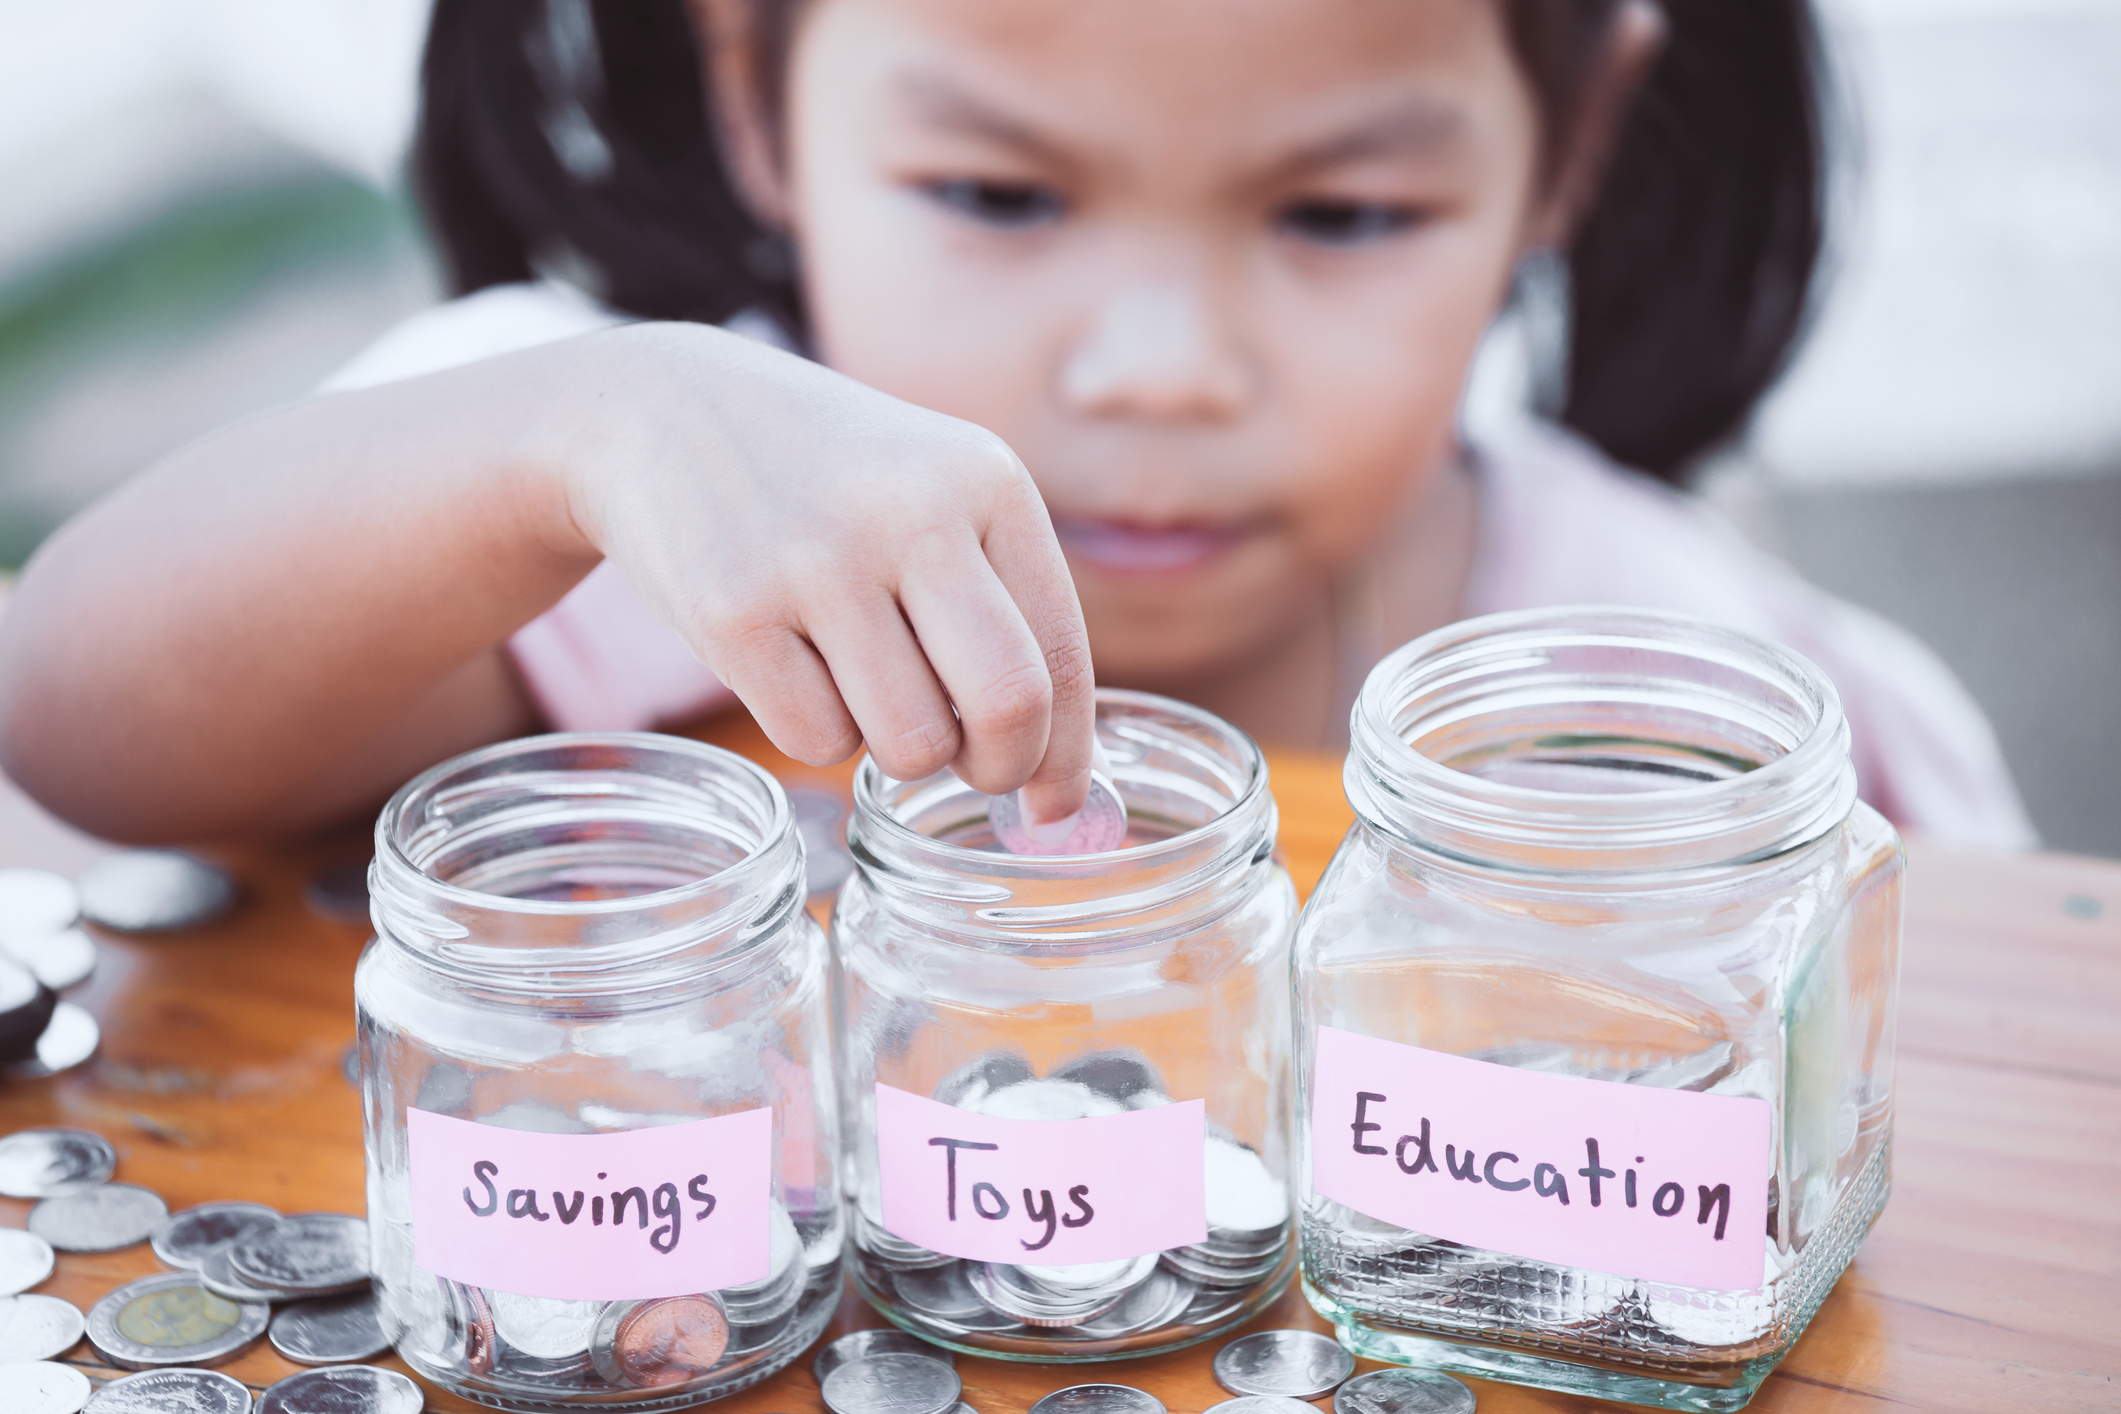 7 Things to Consider Before Opening a Kids Savings Account